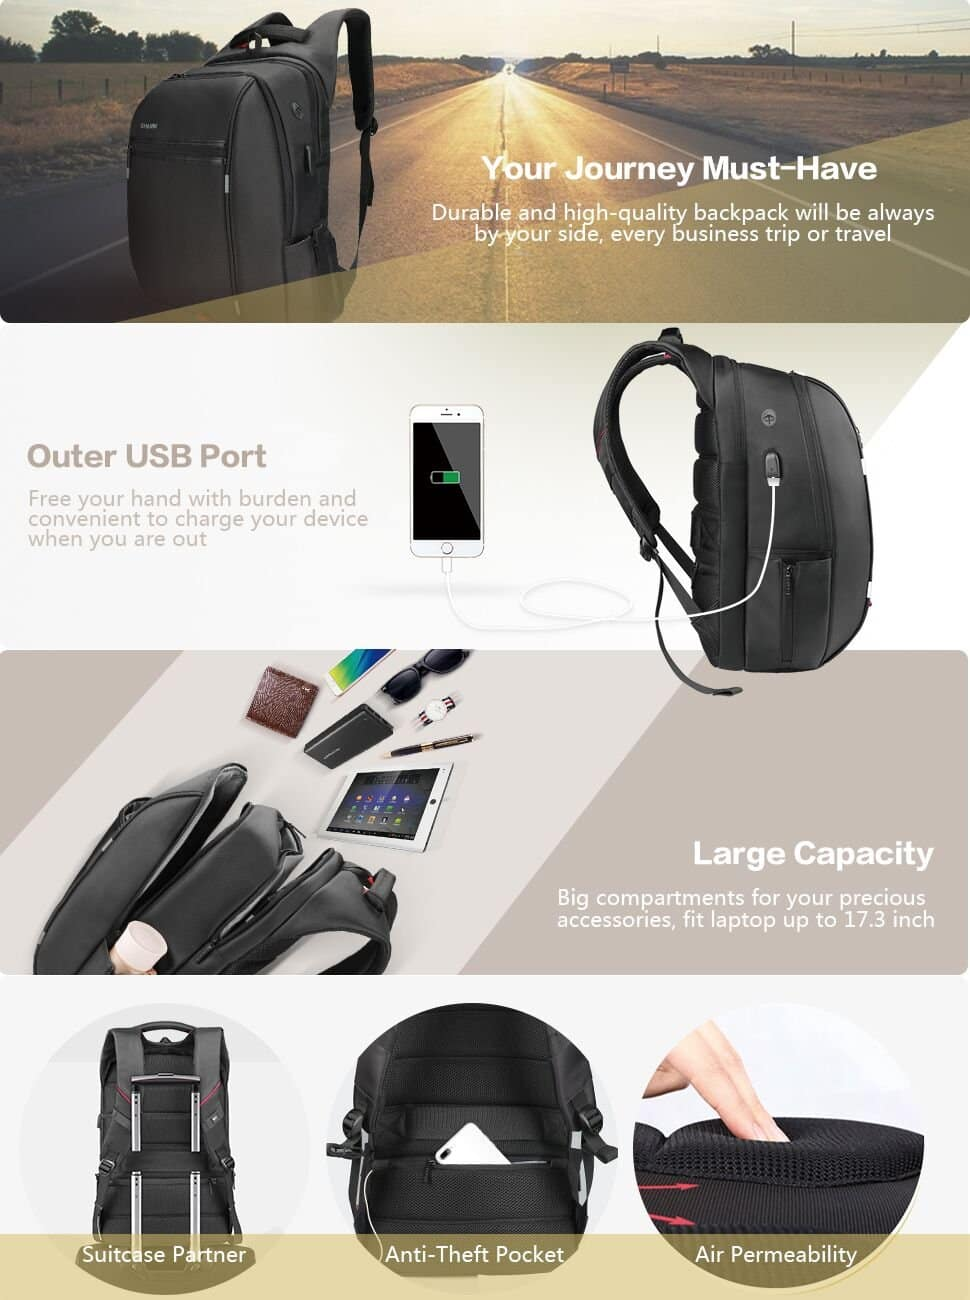 SPARIN Laptop Backpack For Up to 17.3-Inch Laptops and Tablets w/ USB Charging Port - $12.99 + Free Shipping